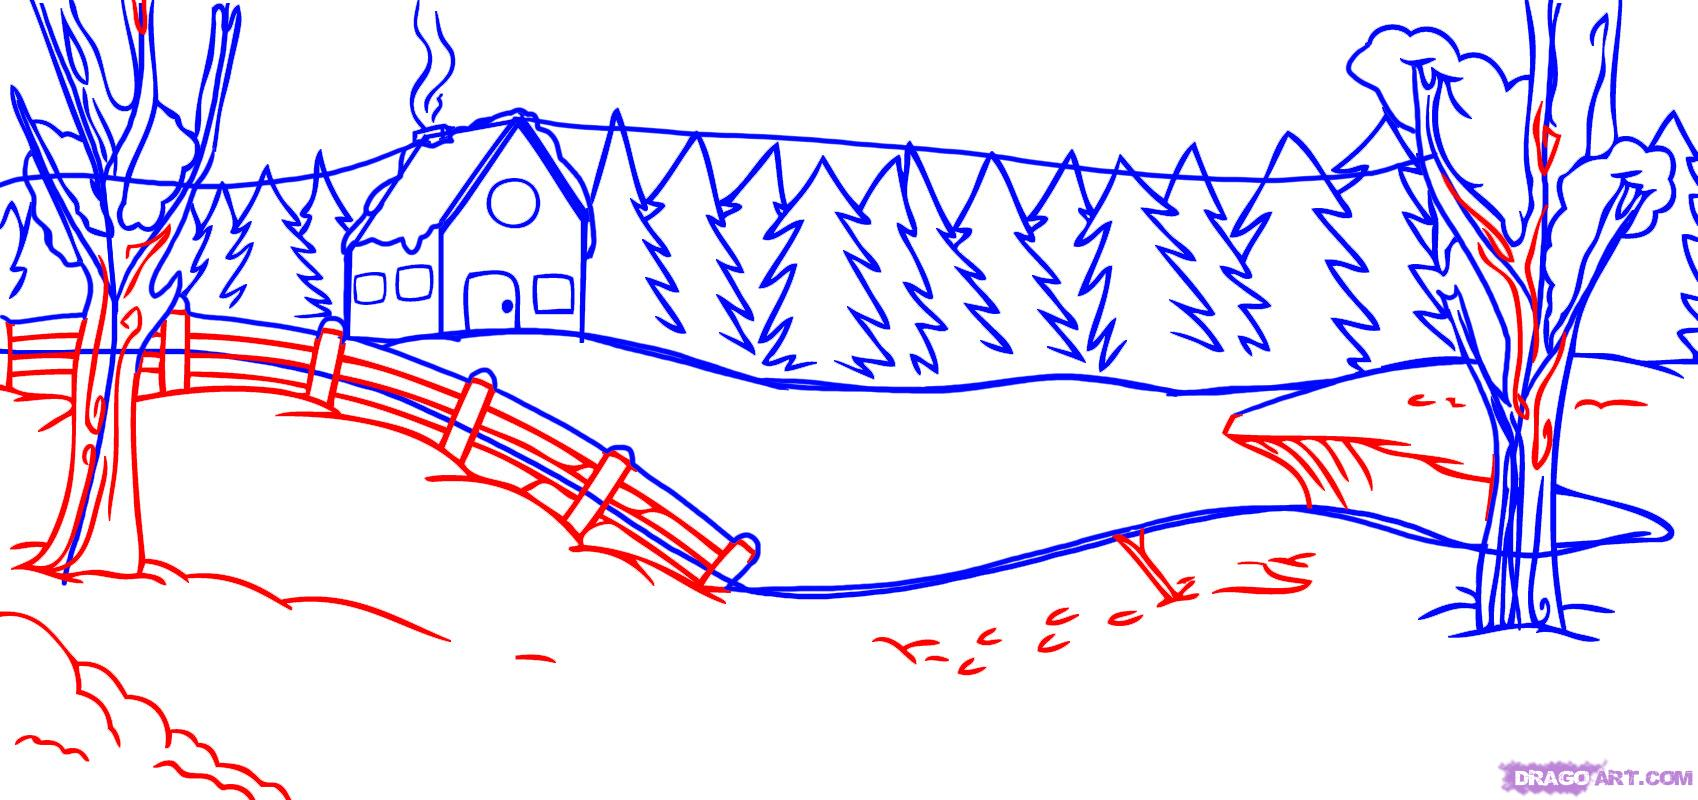 Drawn snowfall winter Other  a scene to